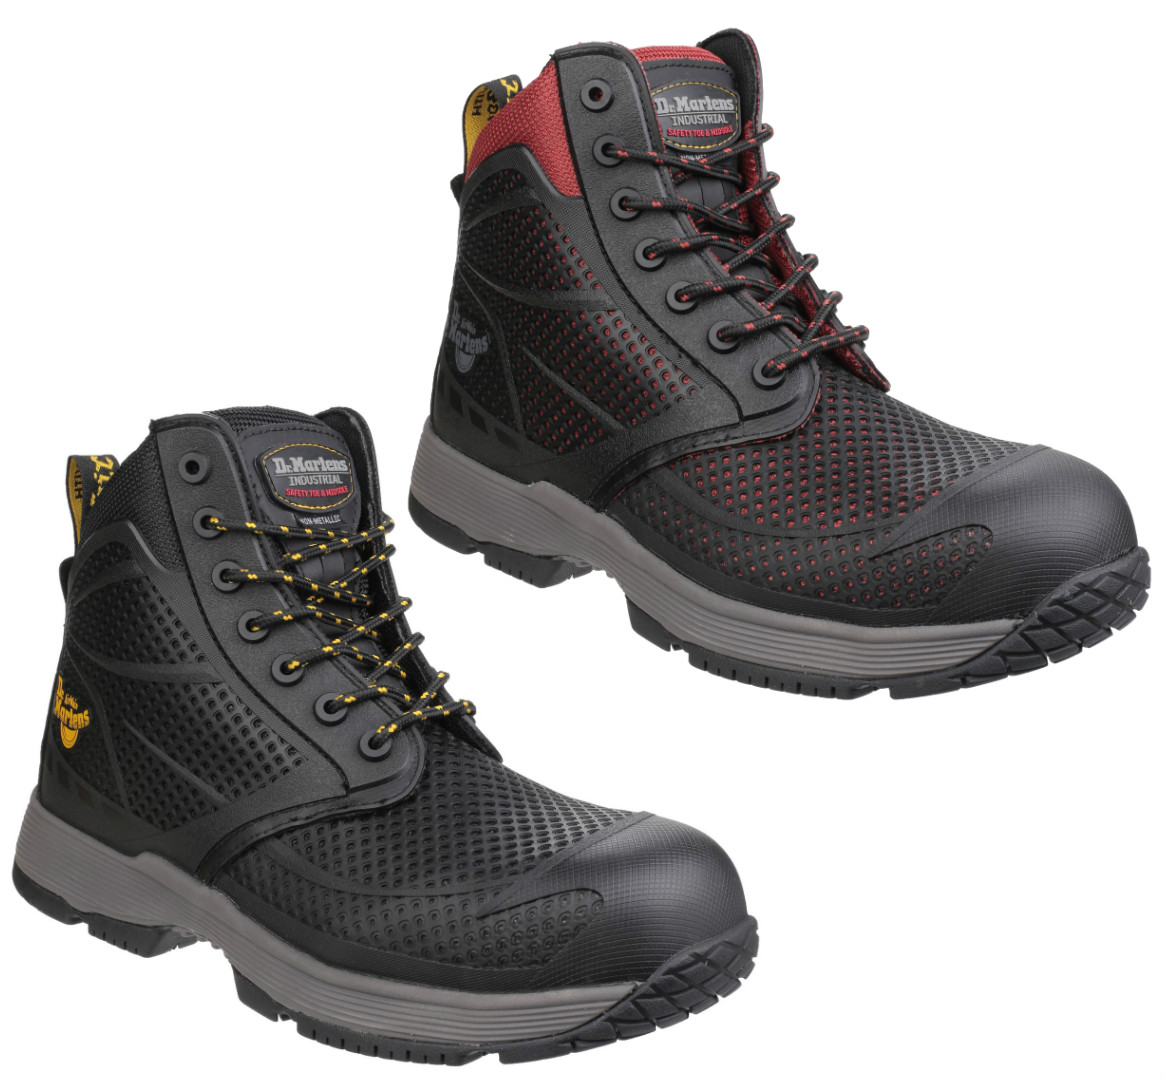 597530b2266 Dr Martens Calamus S1P Non-Metallic Lace up Safety Boot